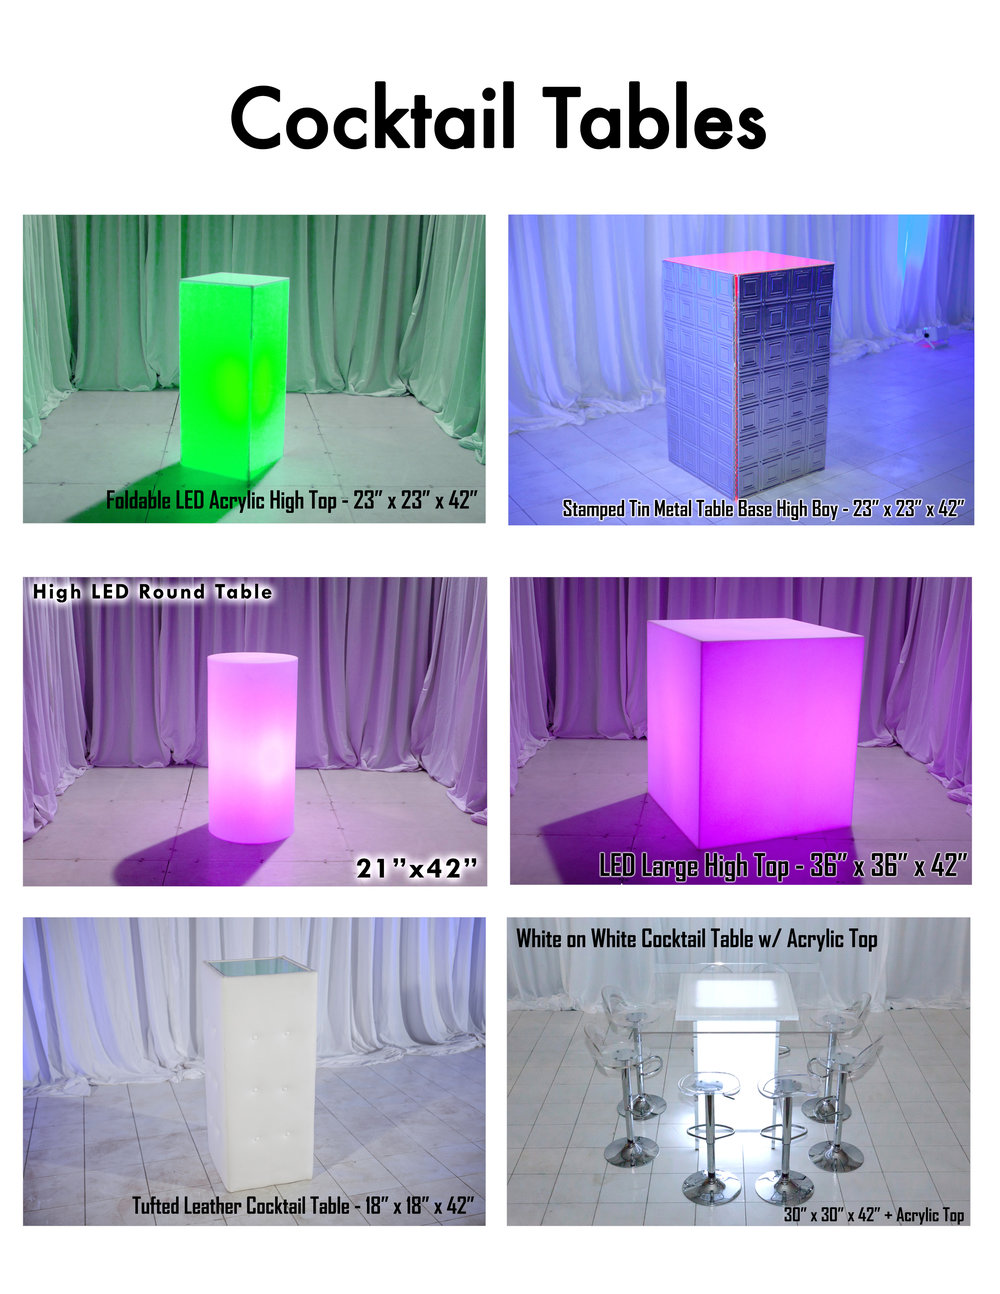 042-P41_Cocktail Tables.jpg